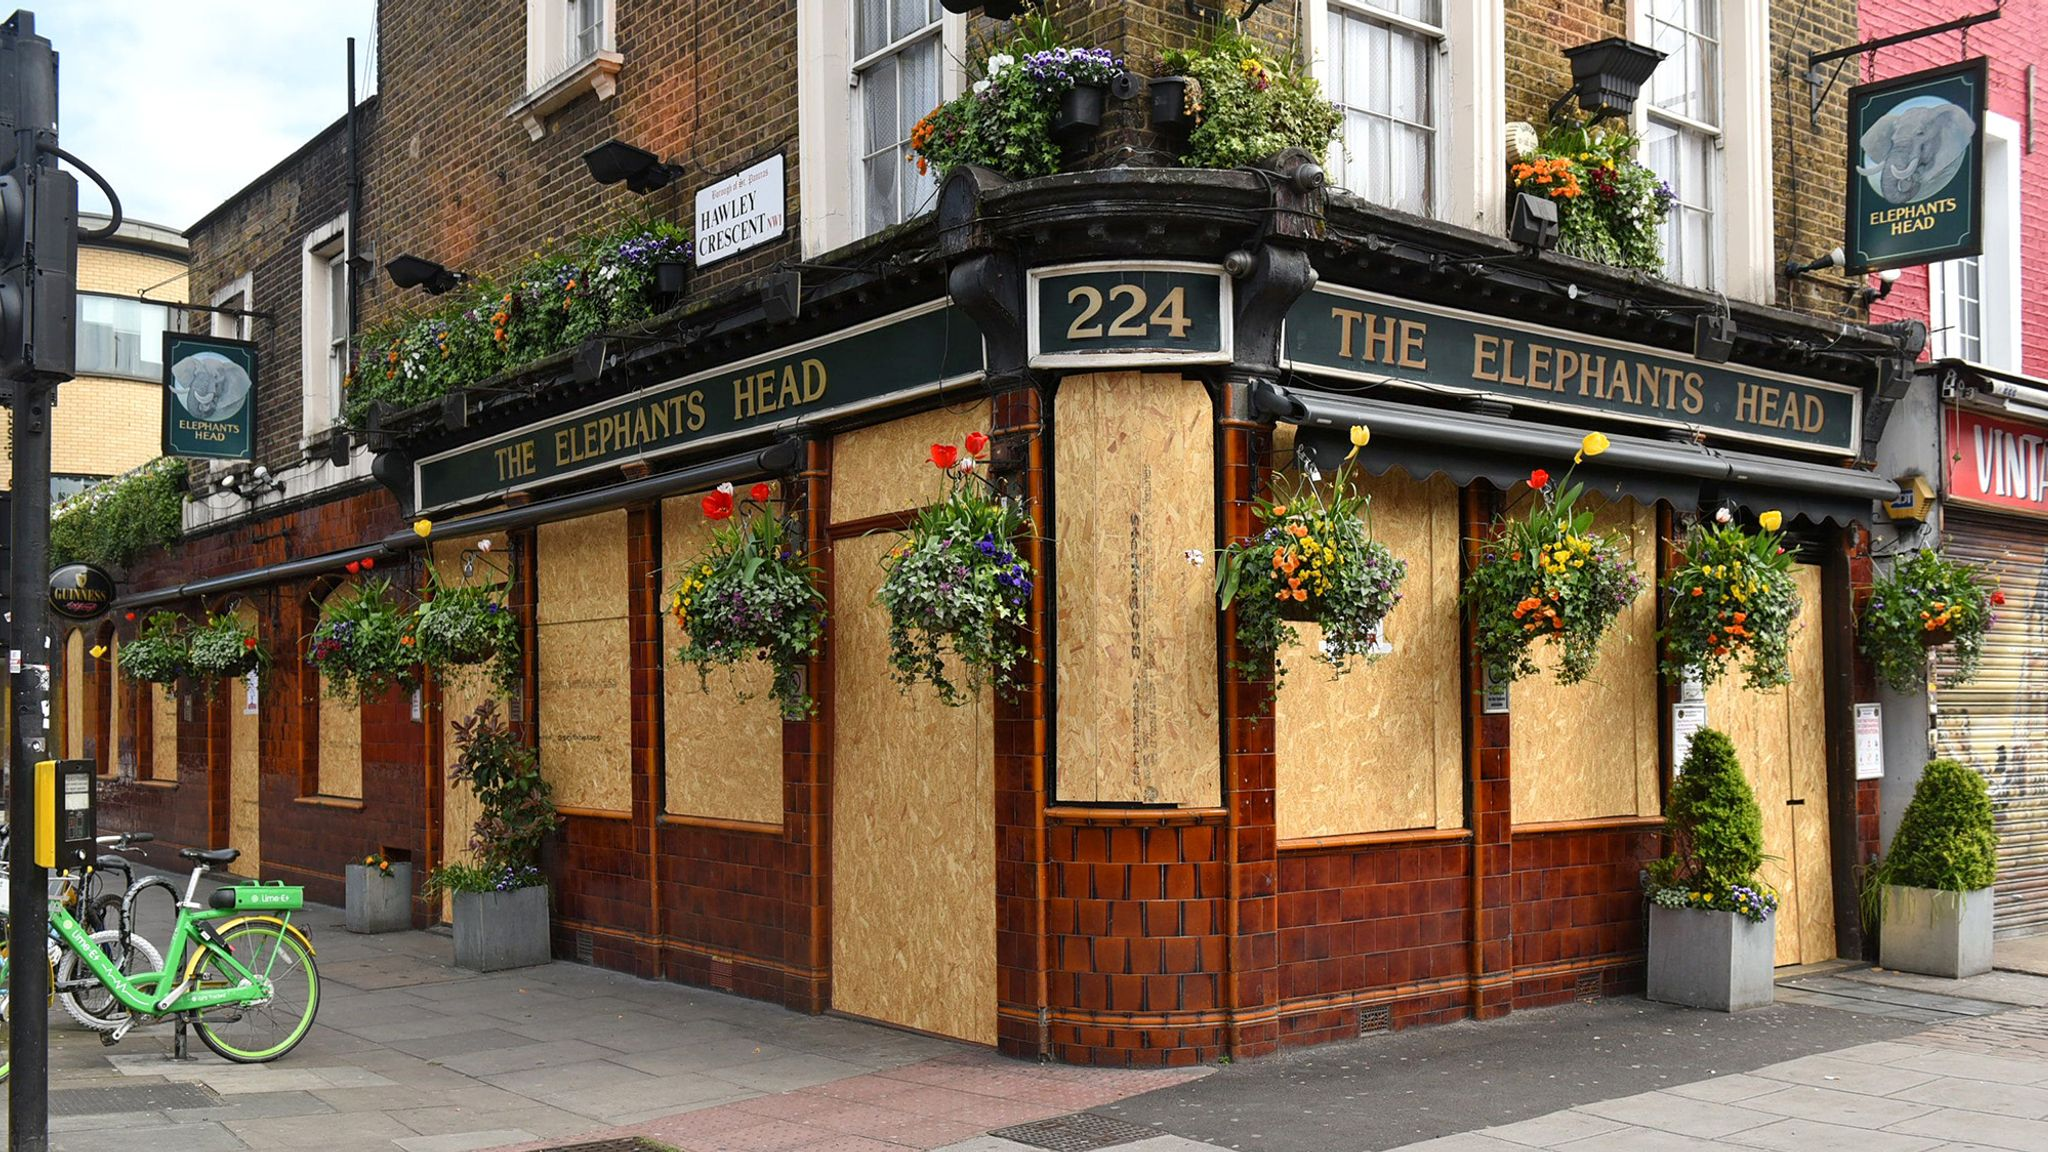 Coronavirus When Pubs Restaurants And Shops Reopen It May Not Be Plain Sailing Business News Sky News